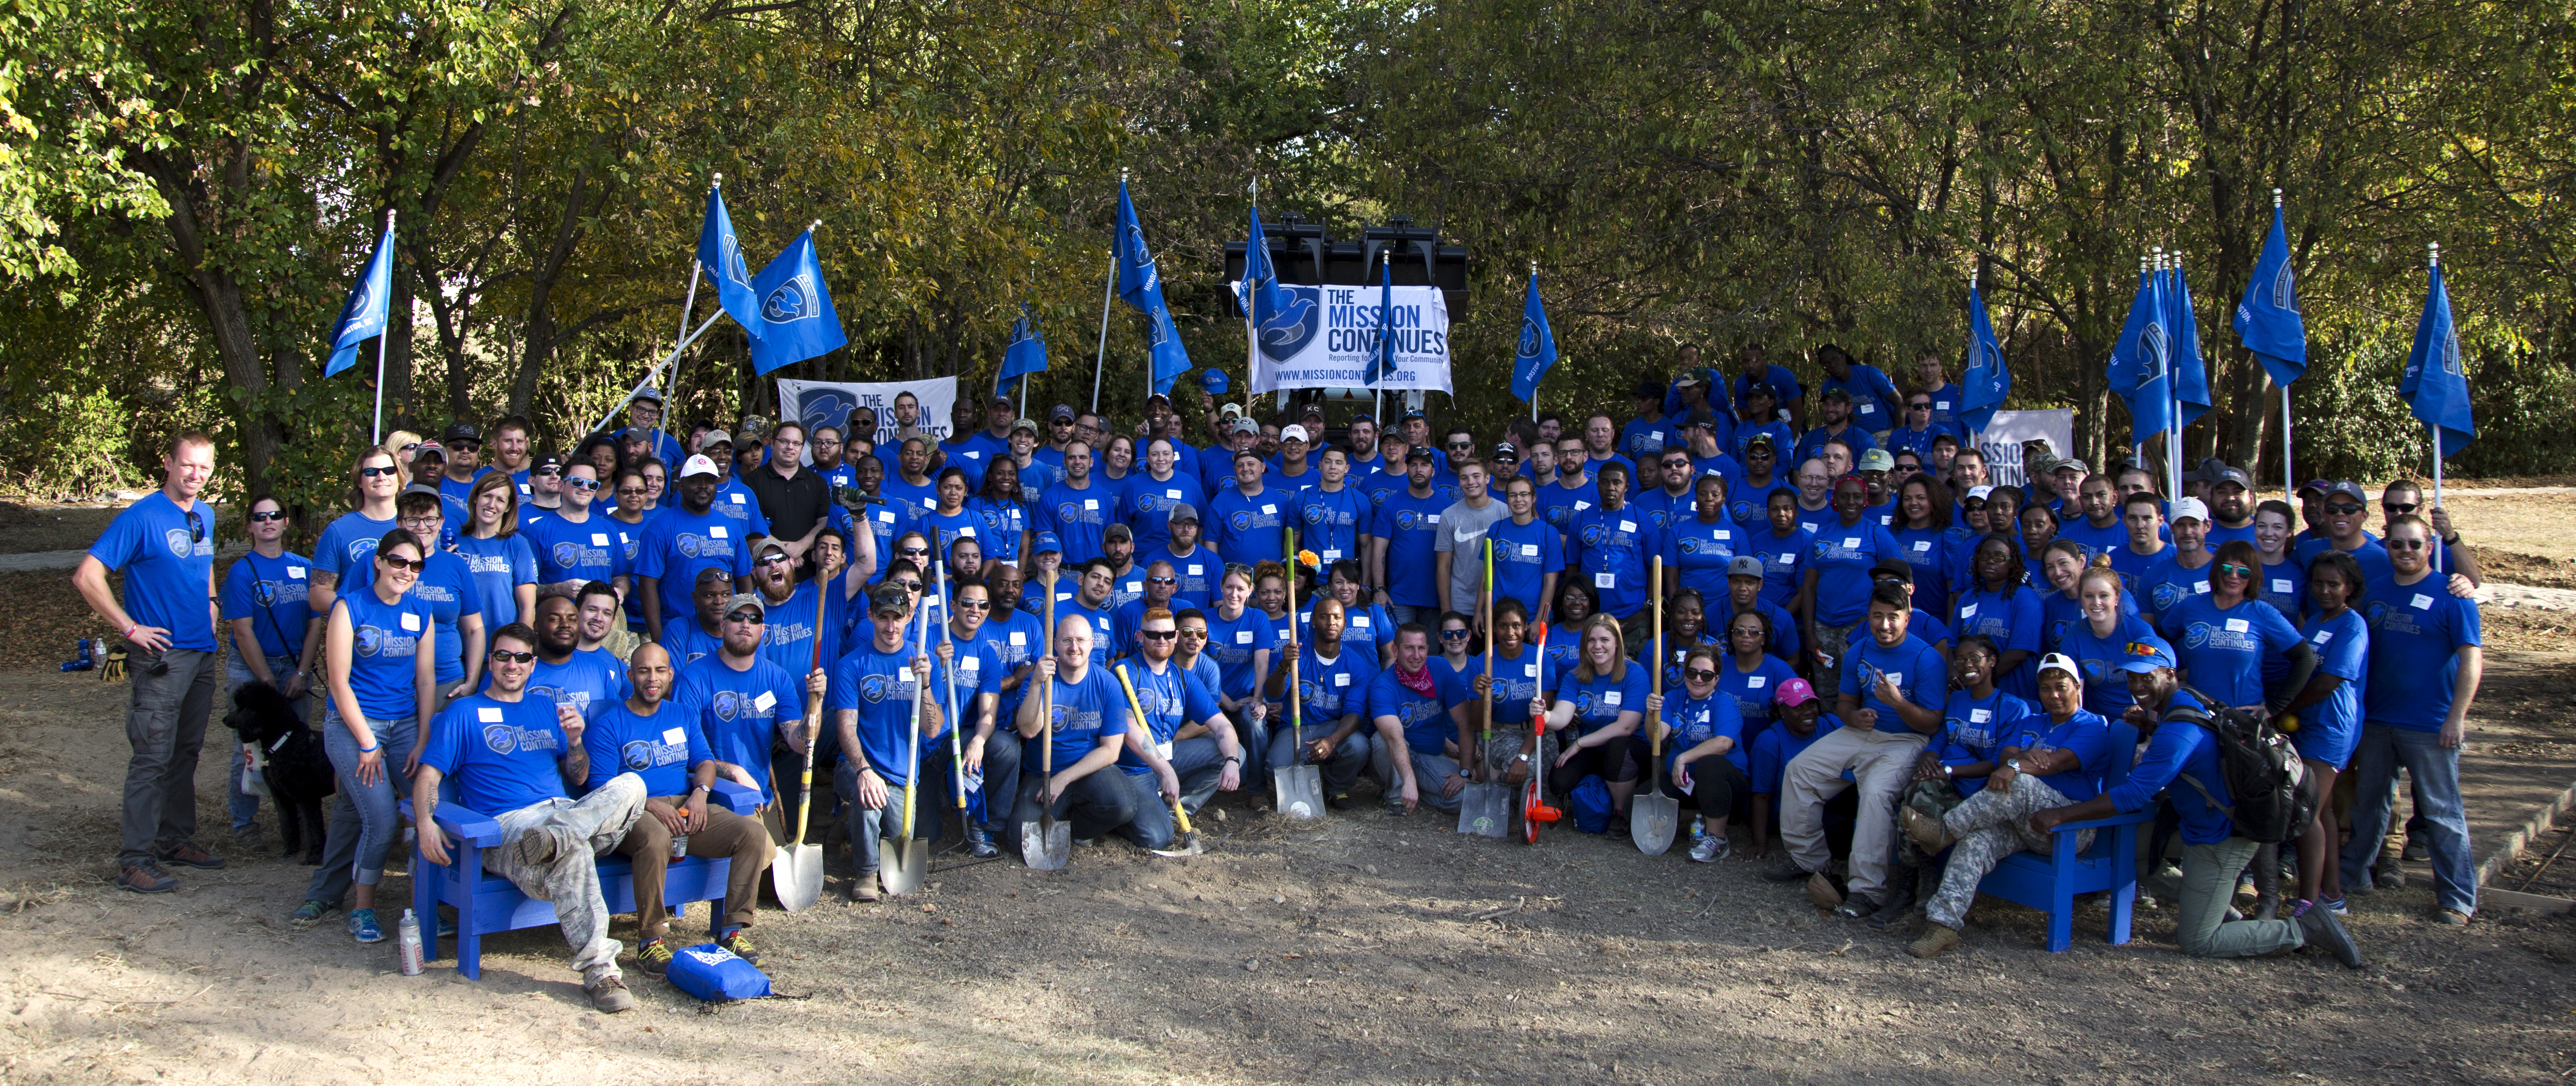 Delta Class 2015 Moves Out to Serve Their Communities